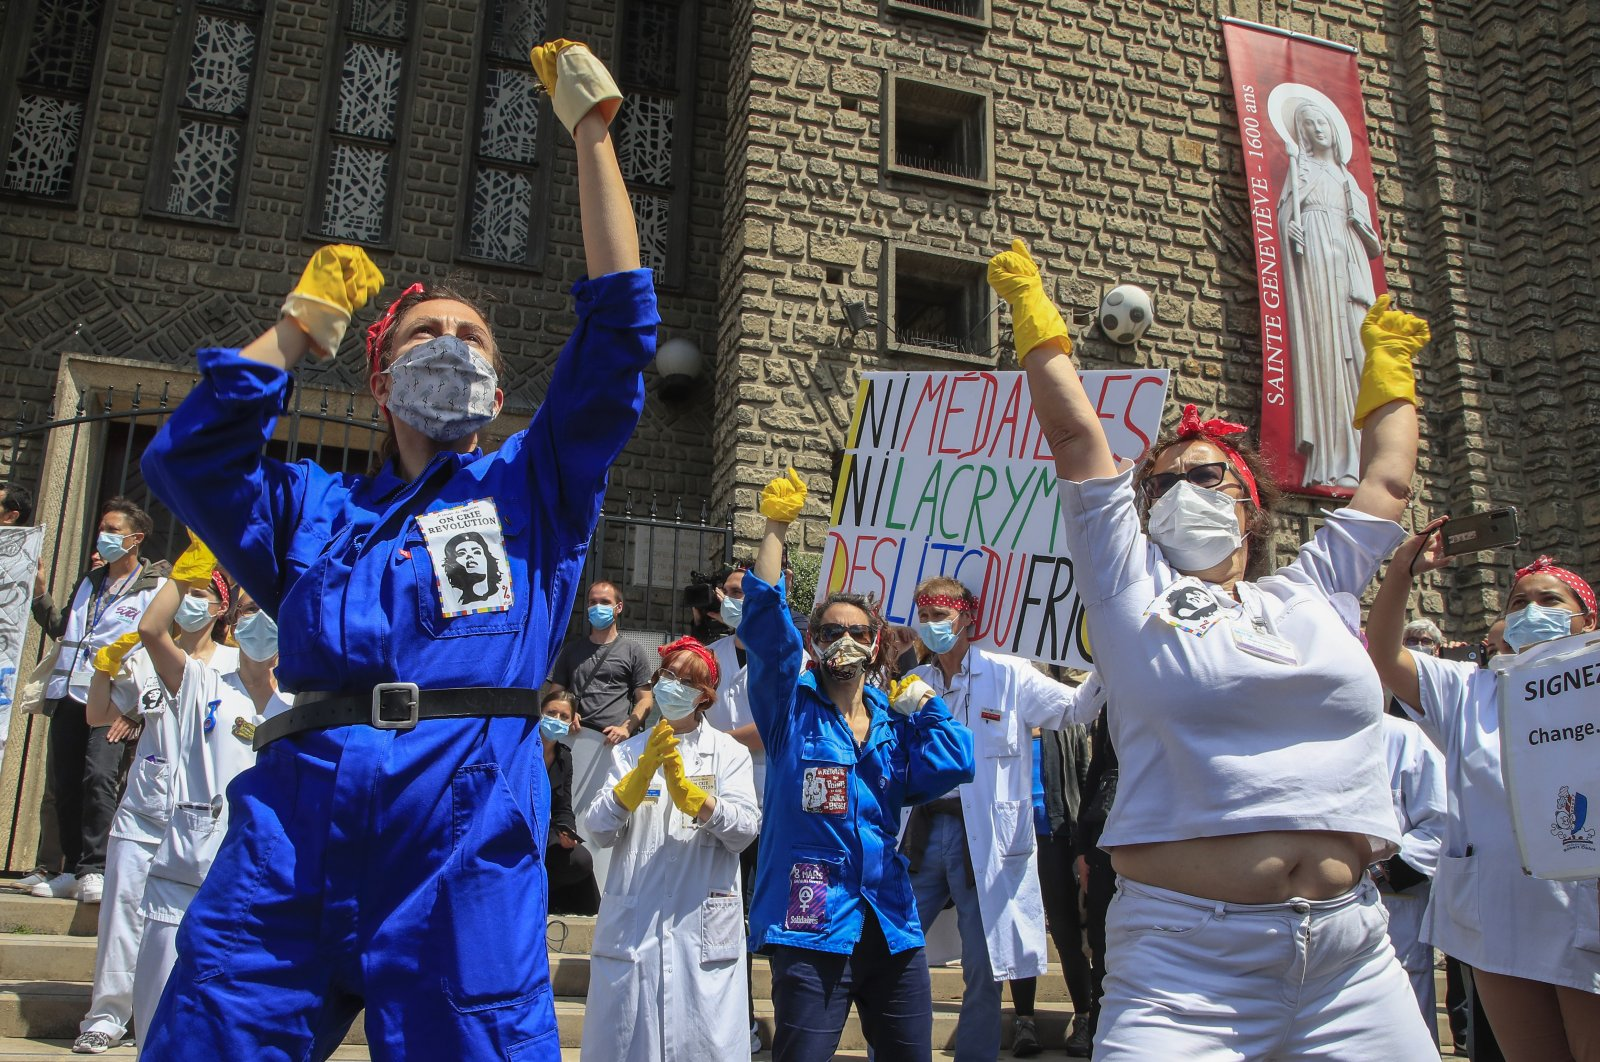 Medical personnel from the Robert Debre hospital, wearing masks to help curb the spread of the coronavirus, stage a protest in Paris, France, June 11, 2020. (AP Photo)